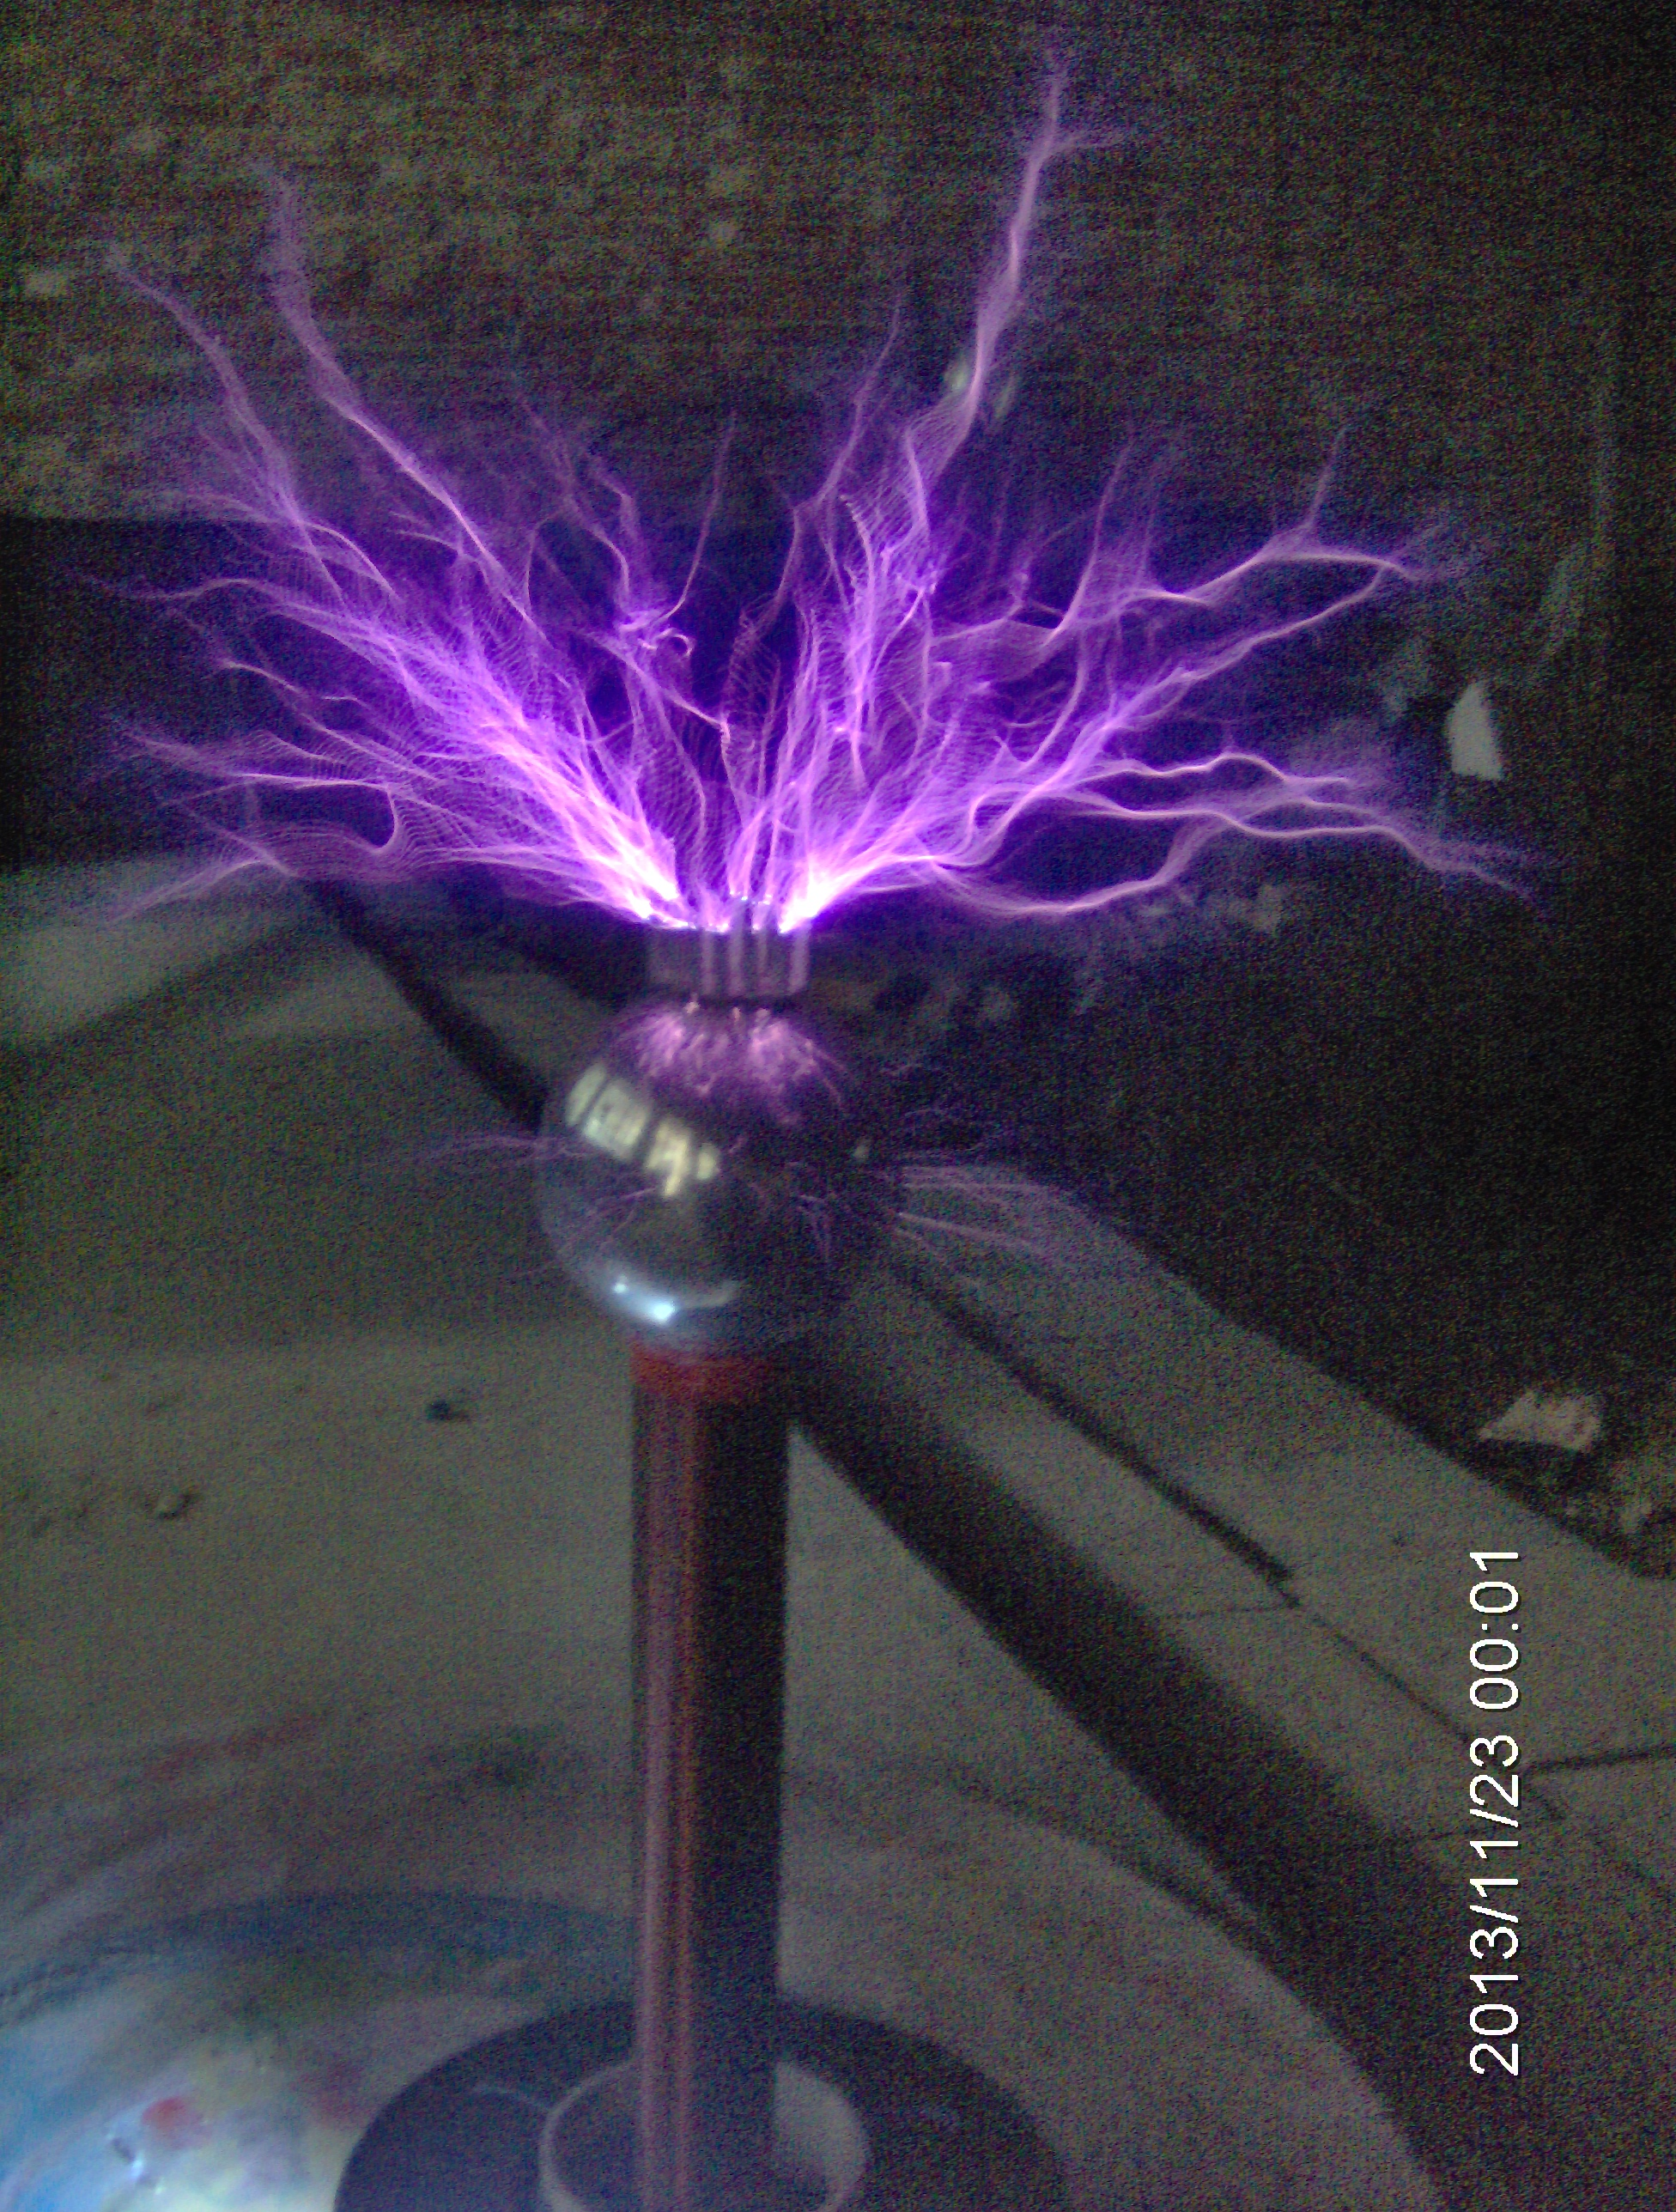 Tesla / Spark Gap Tesla Coil / Lightning DIY Production